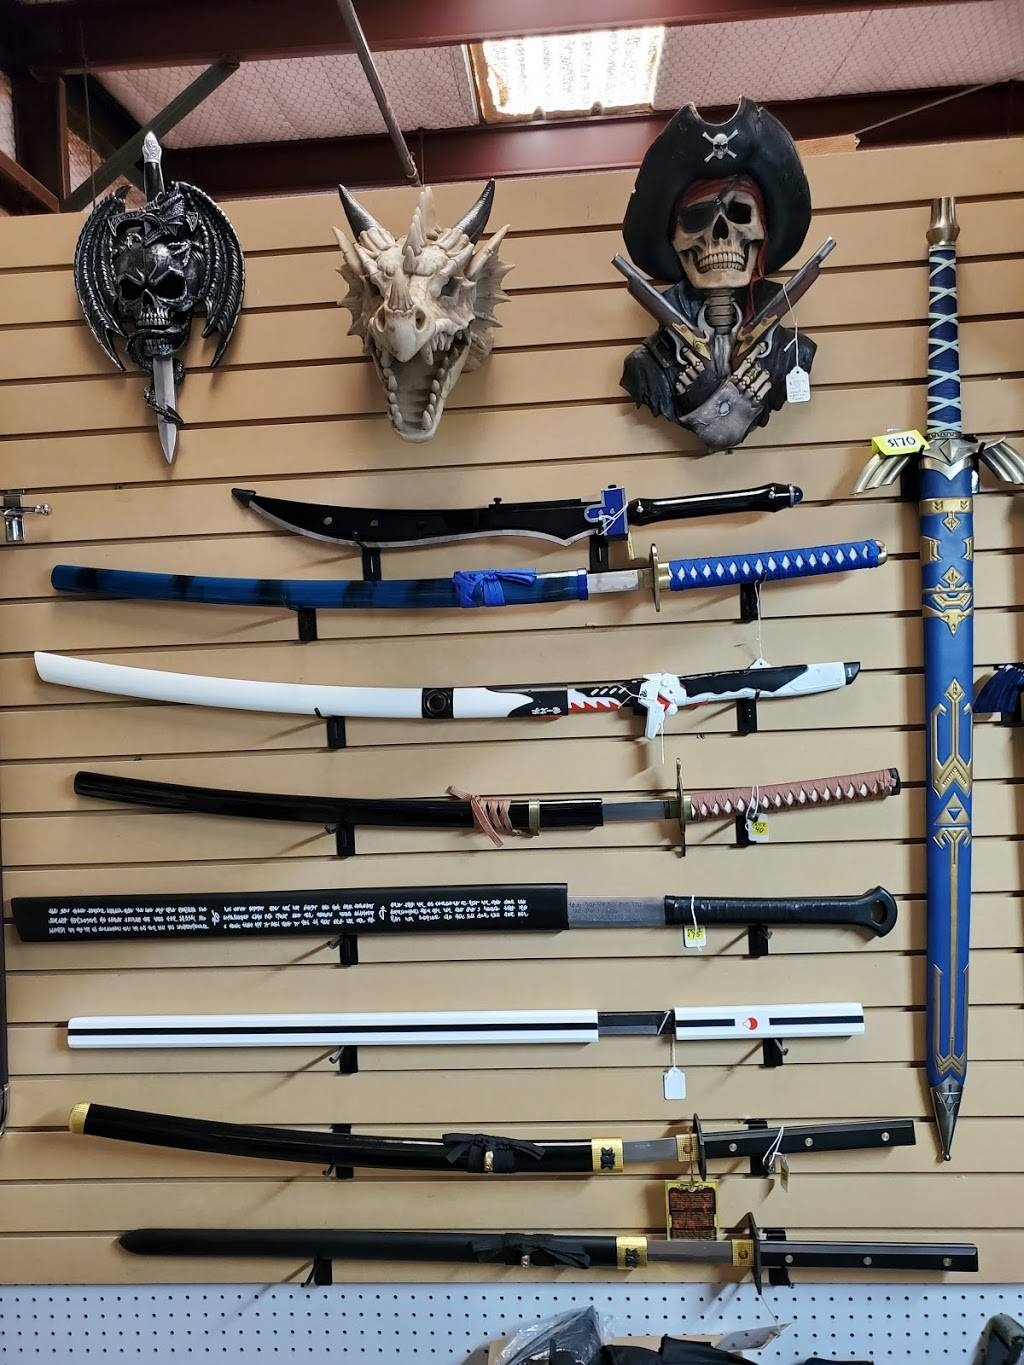 Twisted Js Knives & Tactical - store  | Photo 8 of 9 | Address: 1808 Clovis Rd, Lubbock, TX 79415, USA | Phone: (806) 448-8210